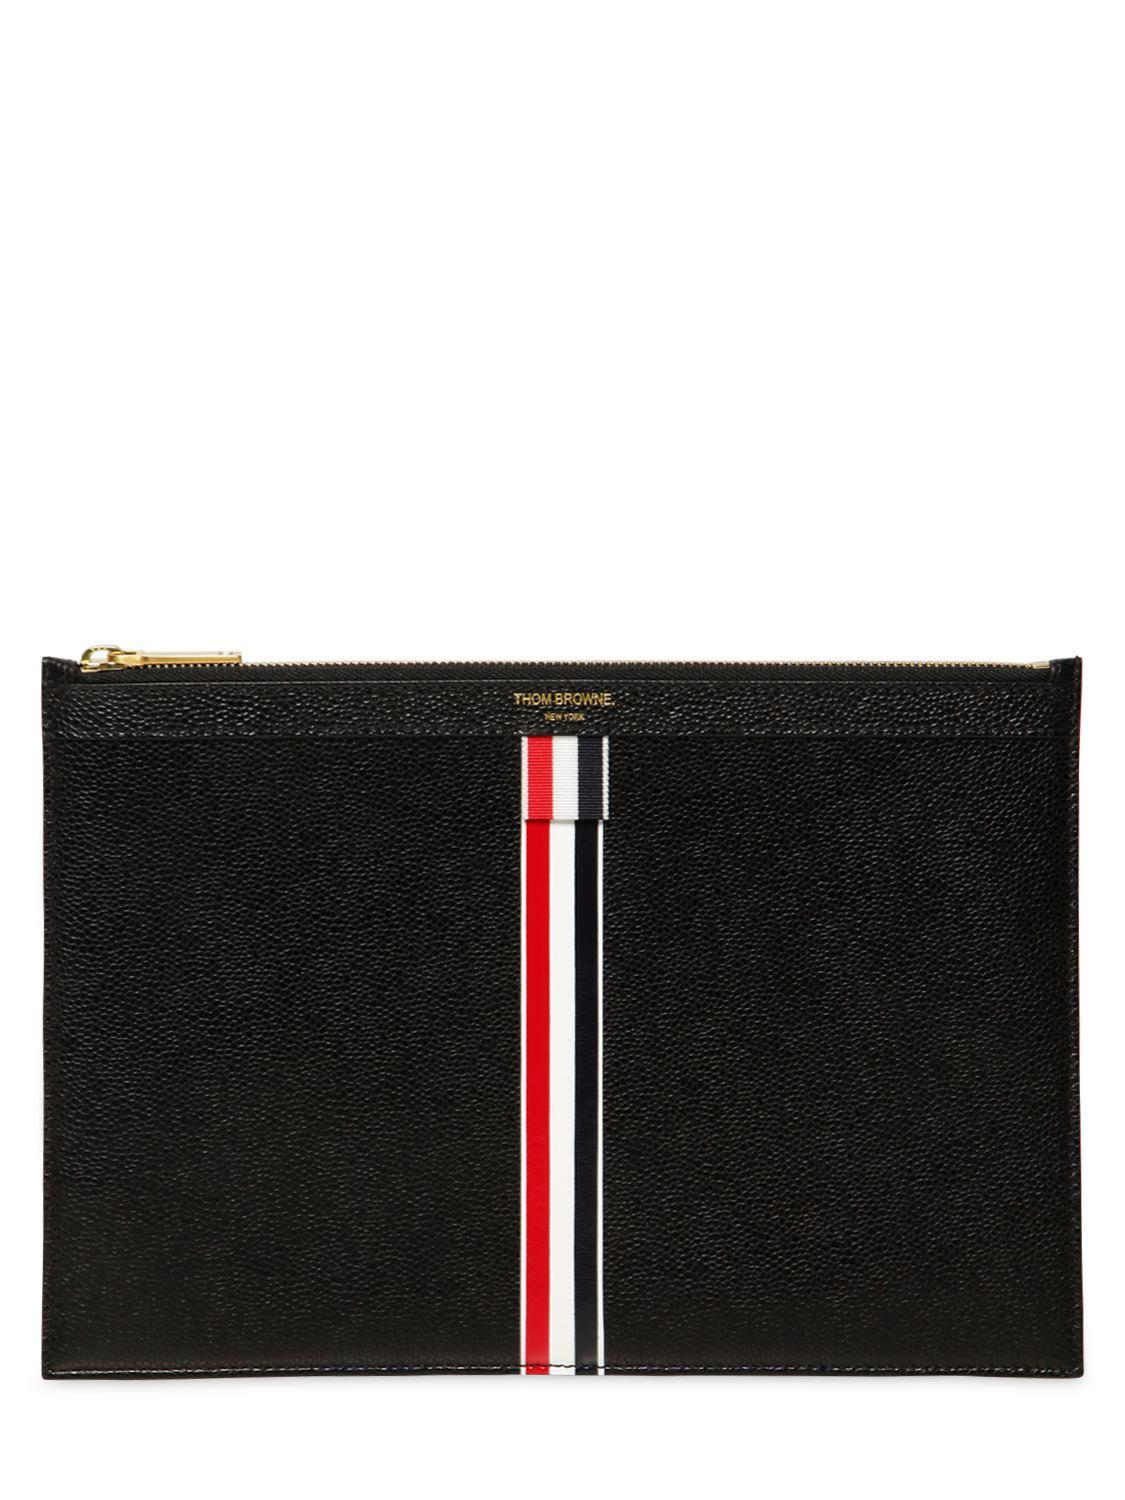 Thom Browne SMALL ZIPPED LEATHER POUCH W/ STRIPES